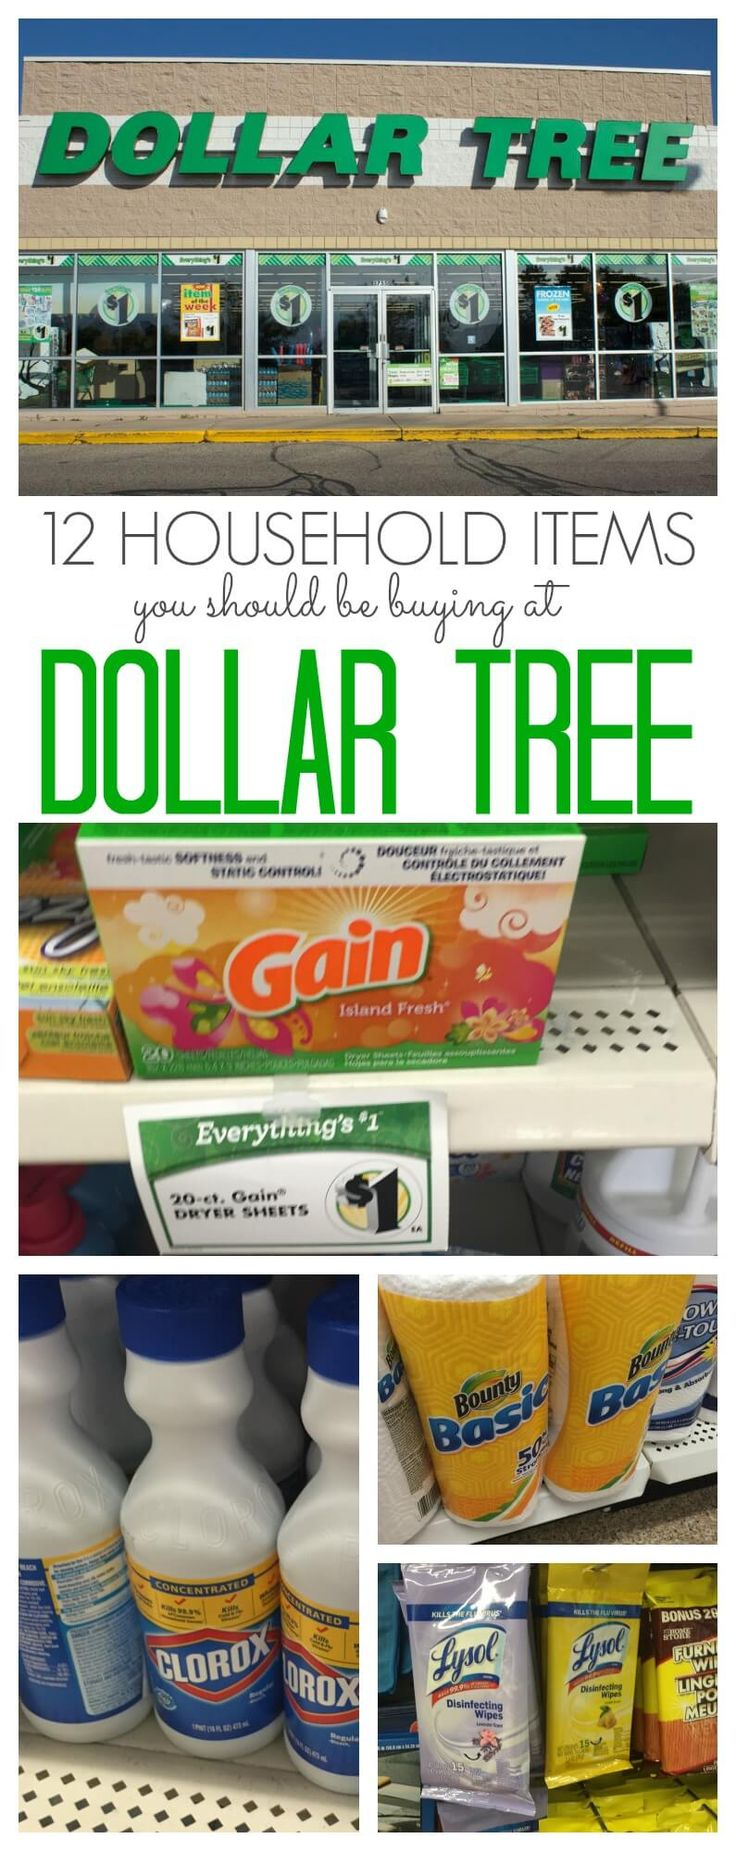 One of the stores you should be shopping at is Dollar Tree. Dollar Tree can be great for groceries, kids items and more. Check out these 10 household items you should buy at Dollar Tree to save. via @Passion4Savings